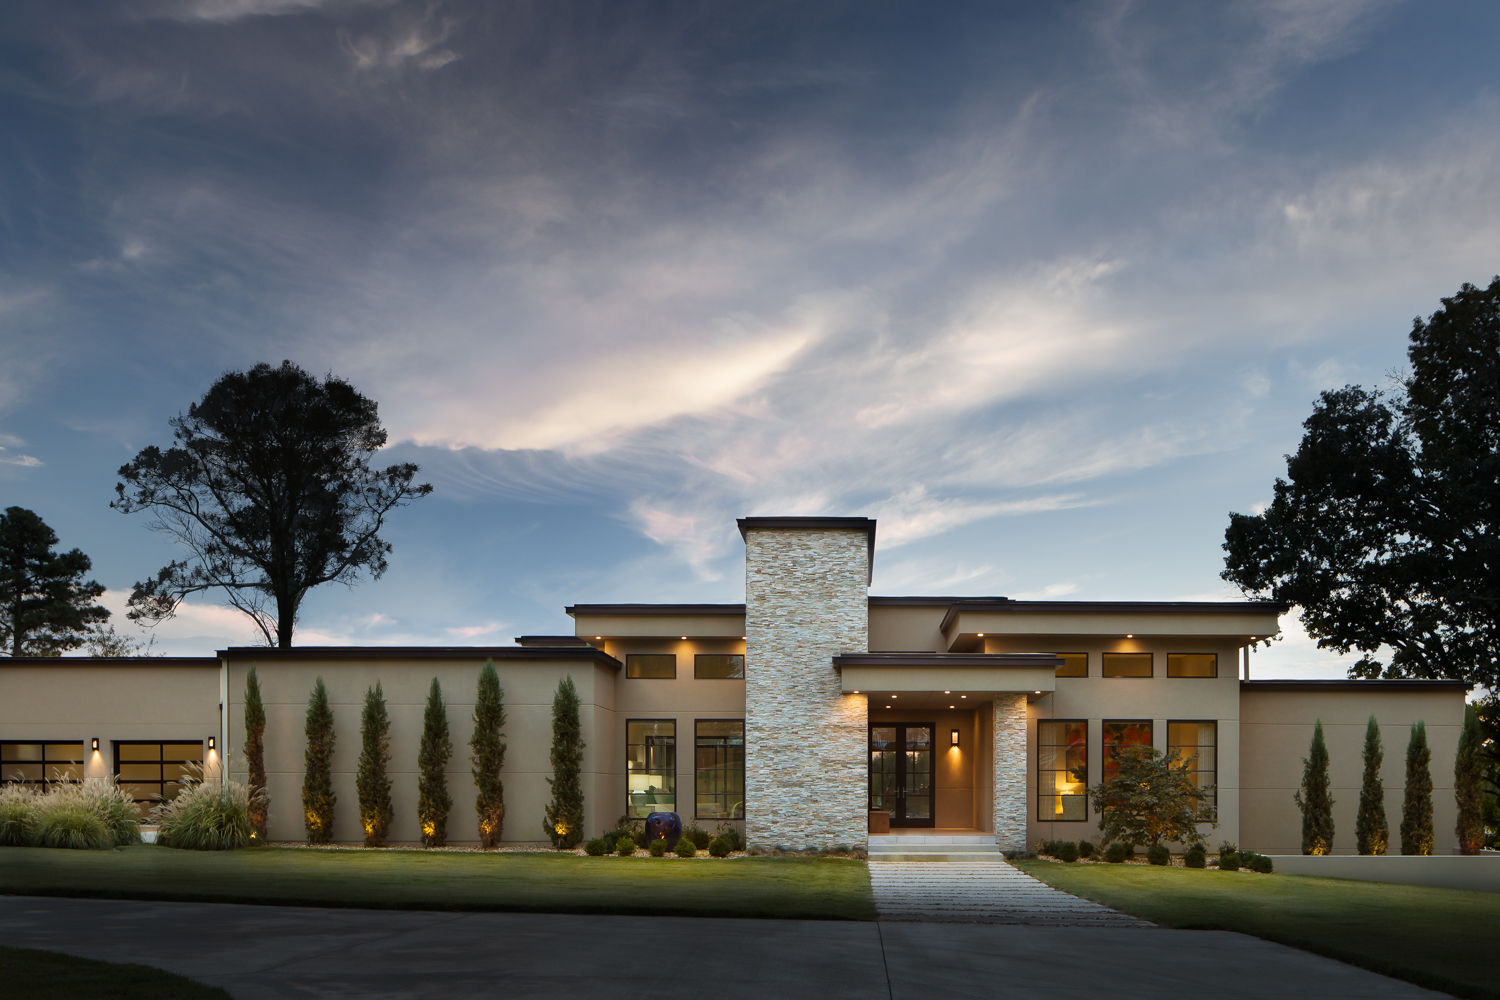 Northshore - Modern luxury home in Florence Alabama photographed for Alexander Modern Homes, Riverwoods Design Studio, and Phil Kean Architecture